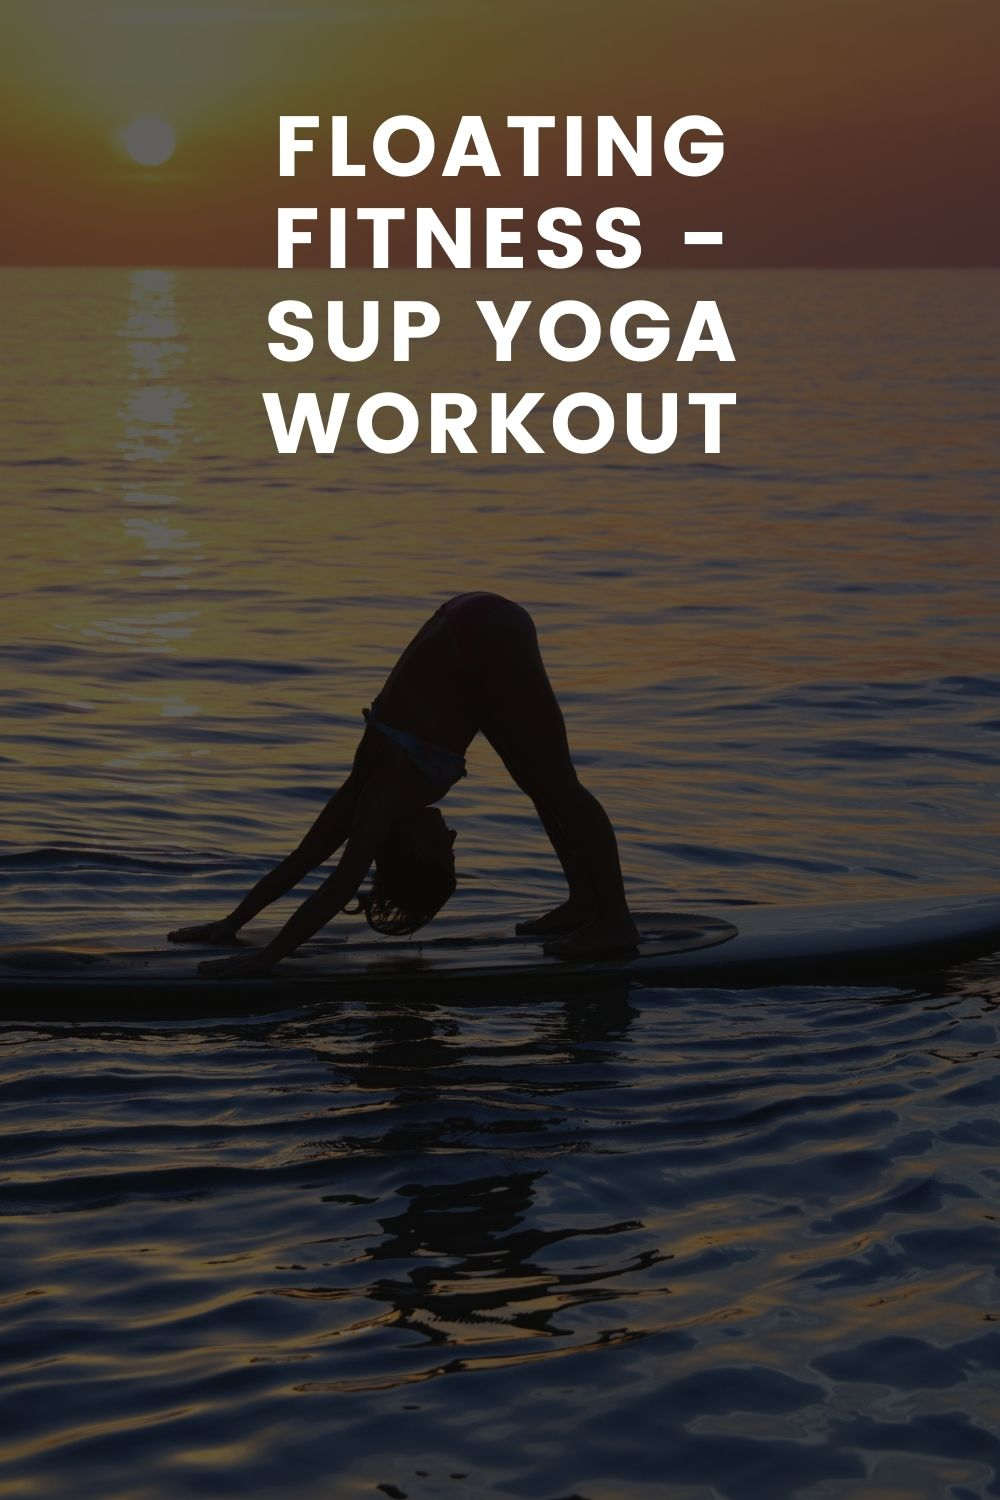 Floating Fitness - SUP Yoga Workout